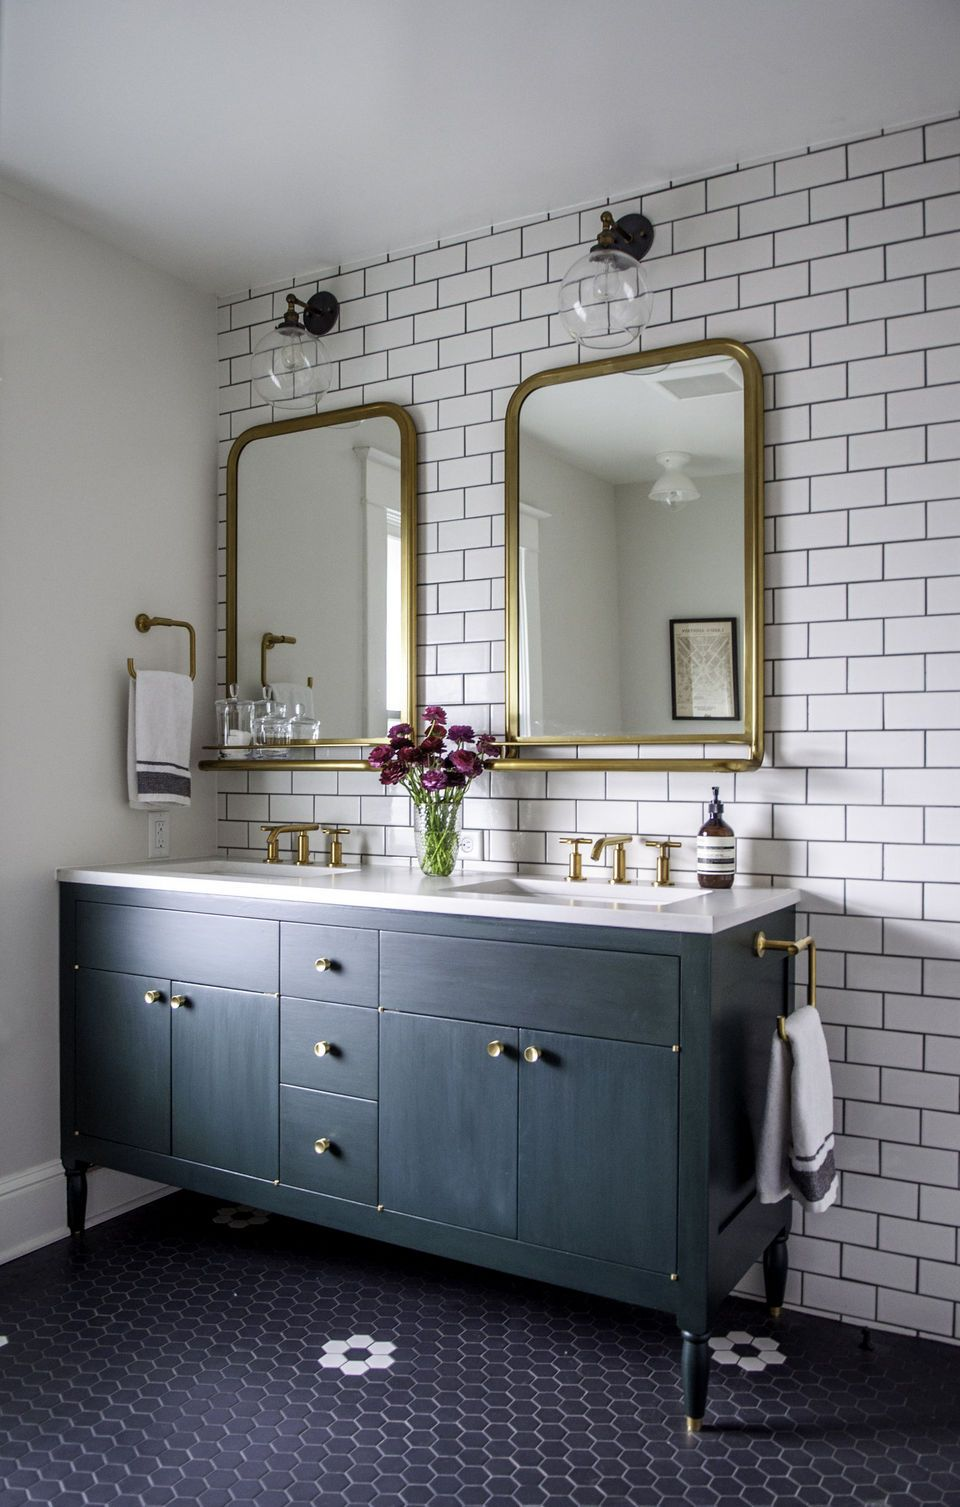 1911 bathroom remodel in Ladd\'s Addition (photos): Show us your ...